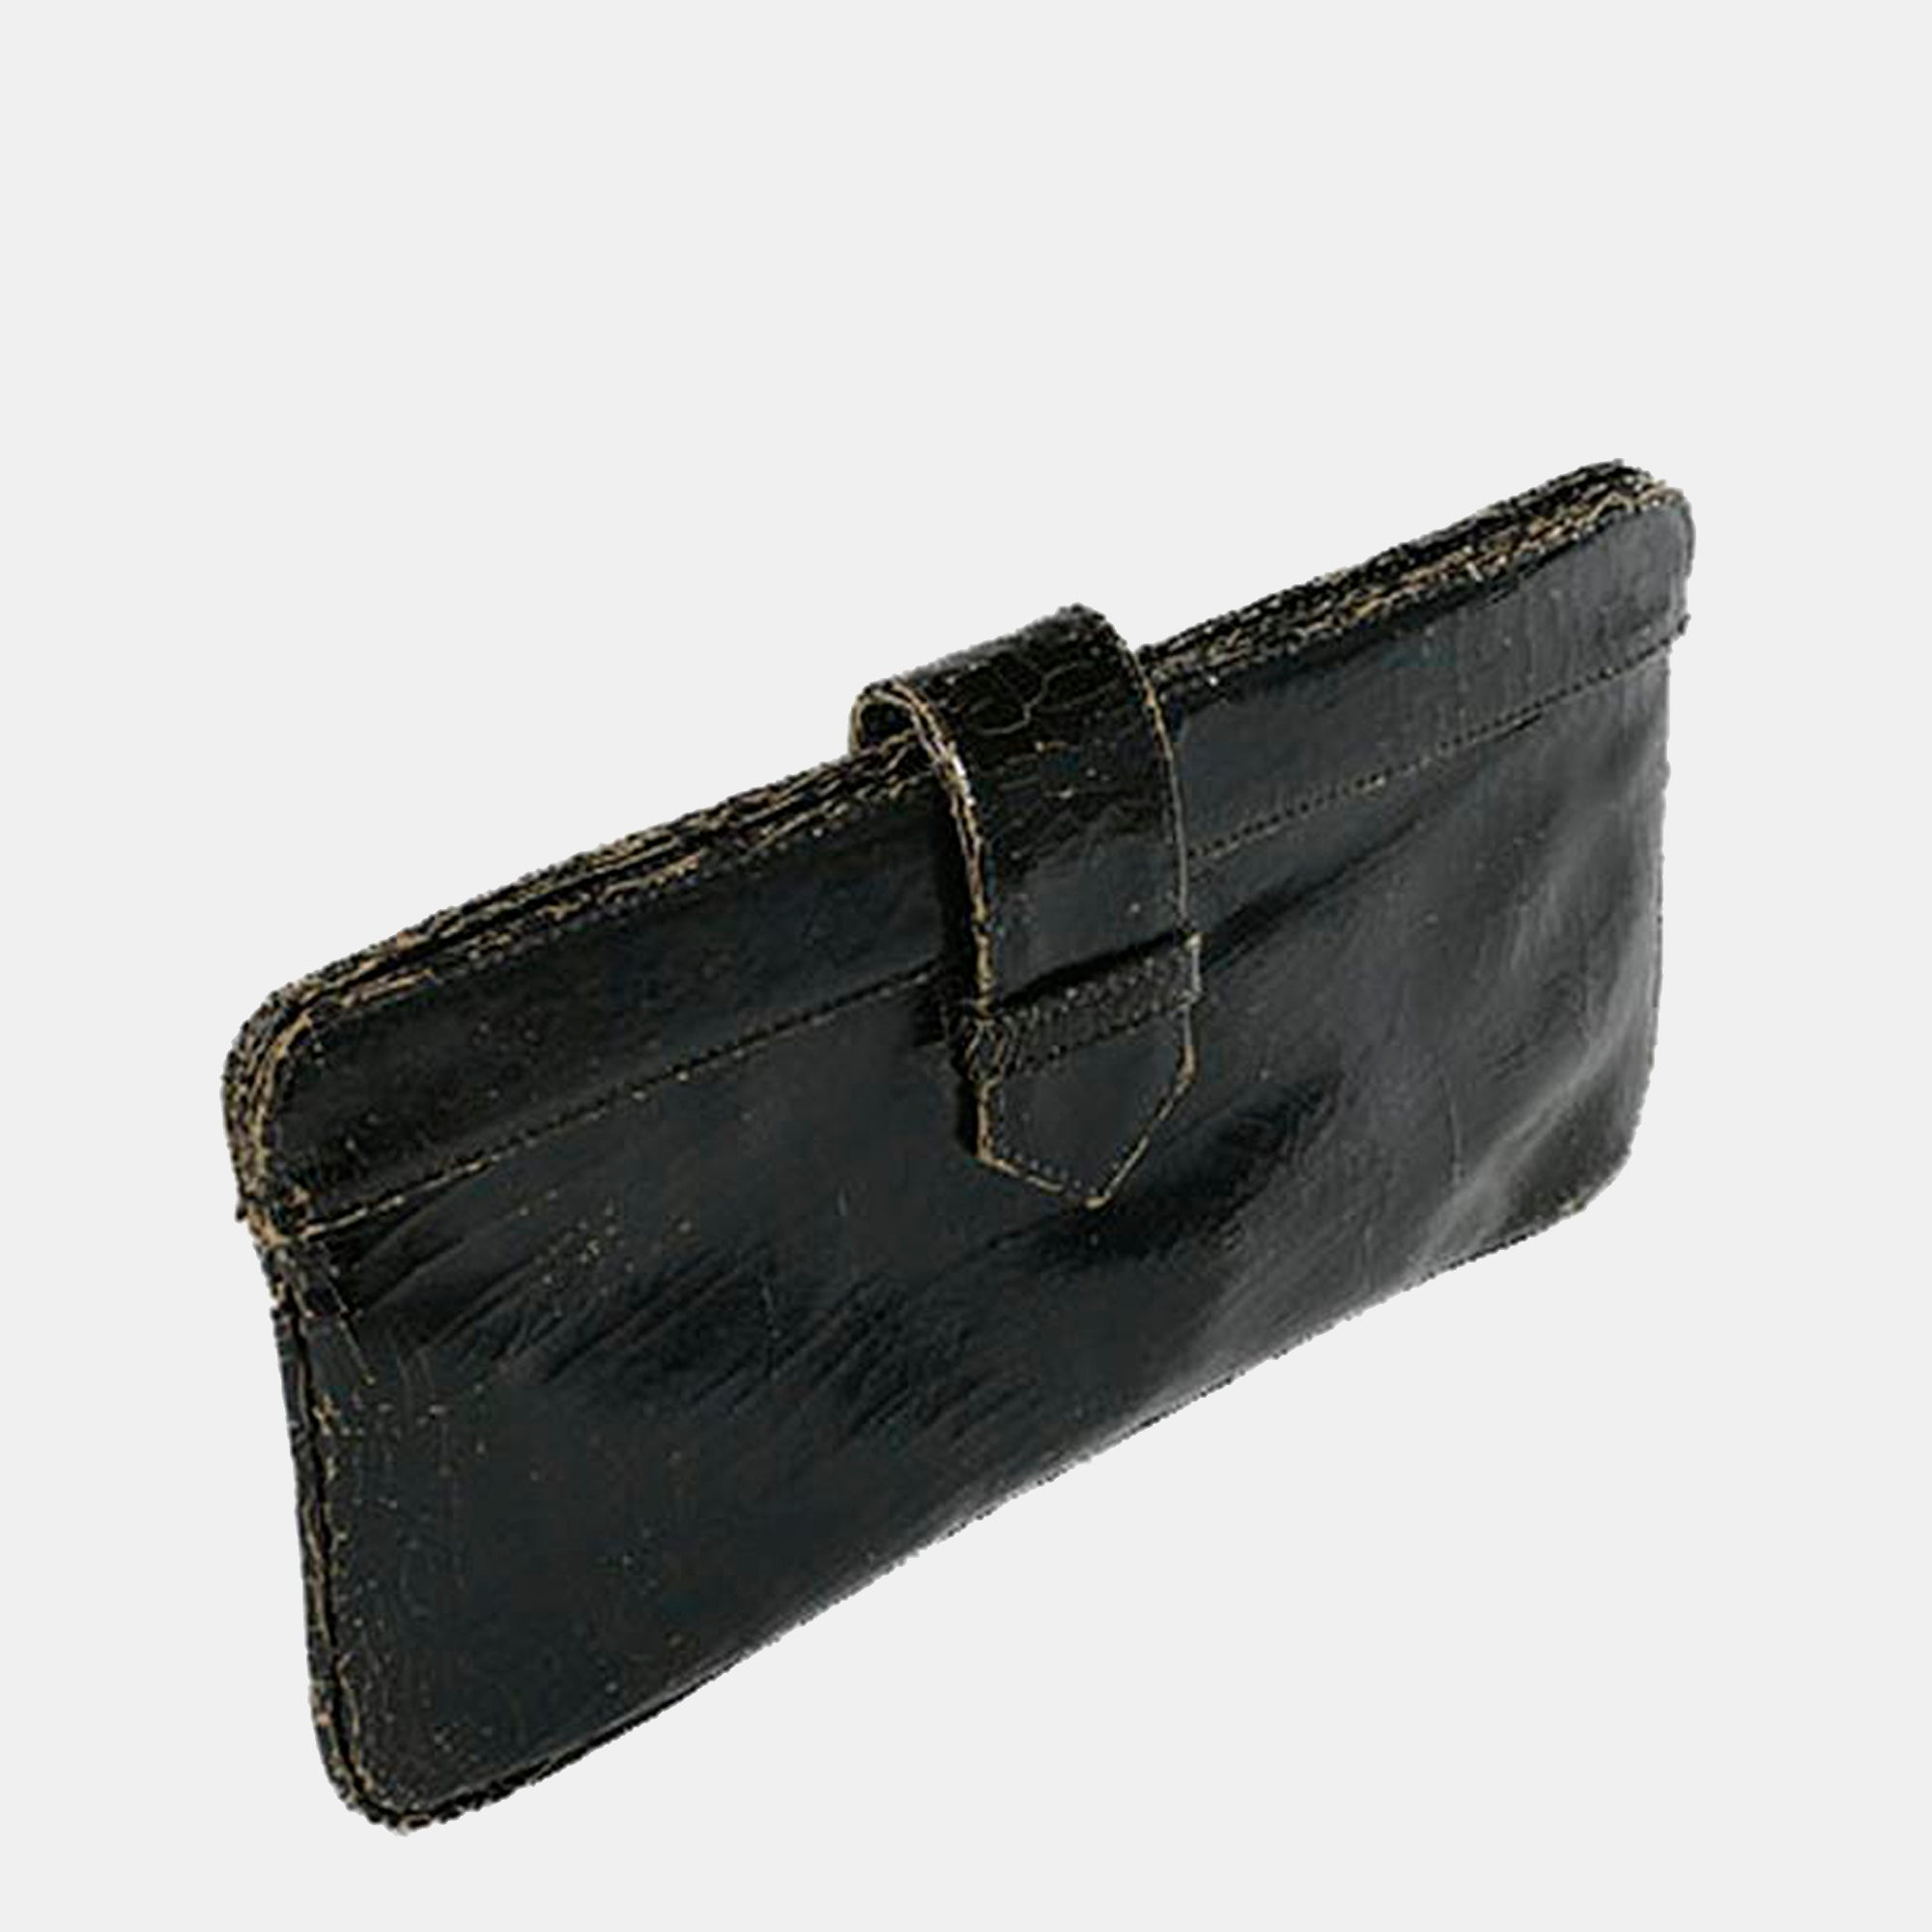 Luxury leather sustainable silk clutch handbag